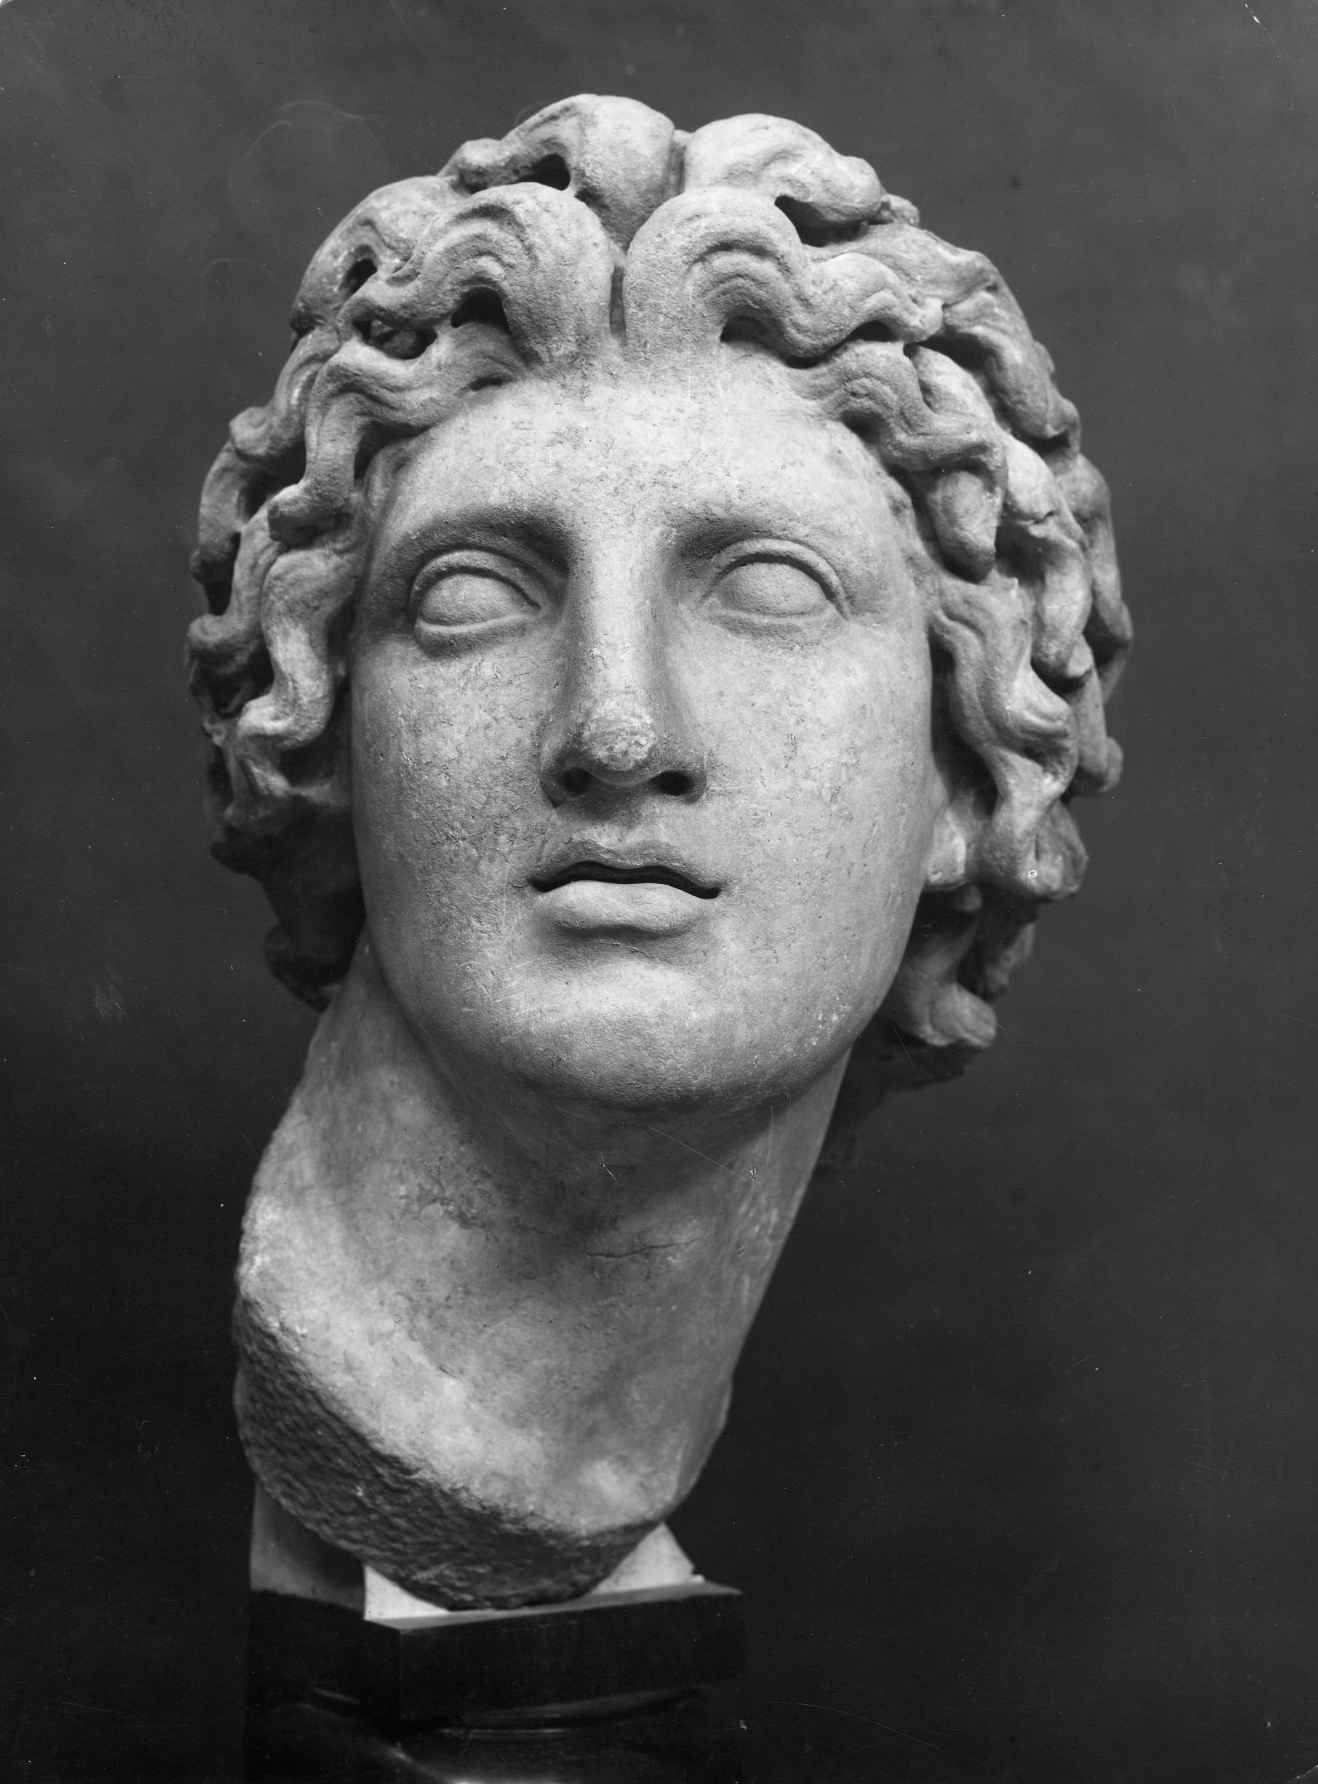 Alexander the Great. Greek marble bust of Alexander the Great, King of of the Greek kingdom of Macedonia 336–323 BC. Museo Barracco, Rome. Photo credit Alinari/Art Resource, NY photo: 1920-1930 ca. #greekstatue